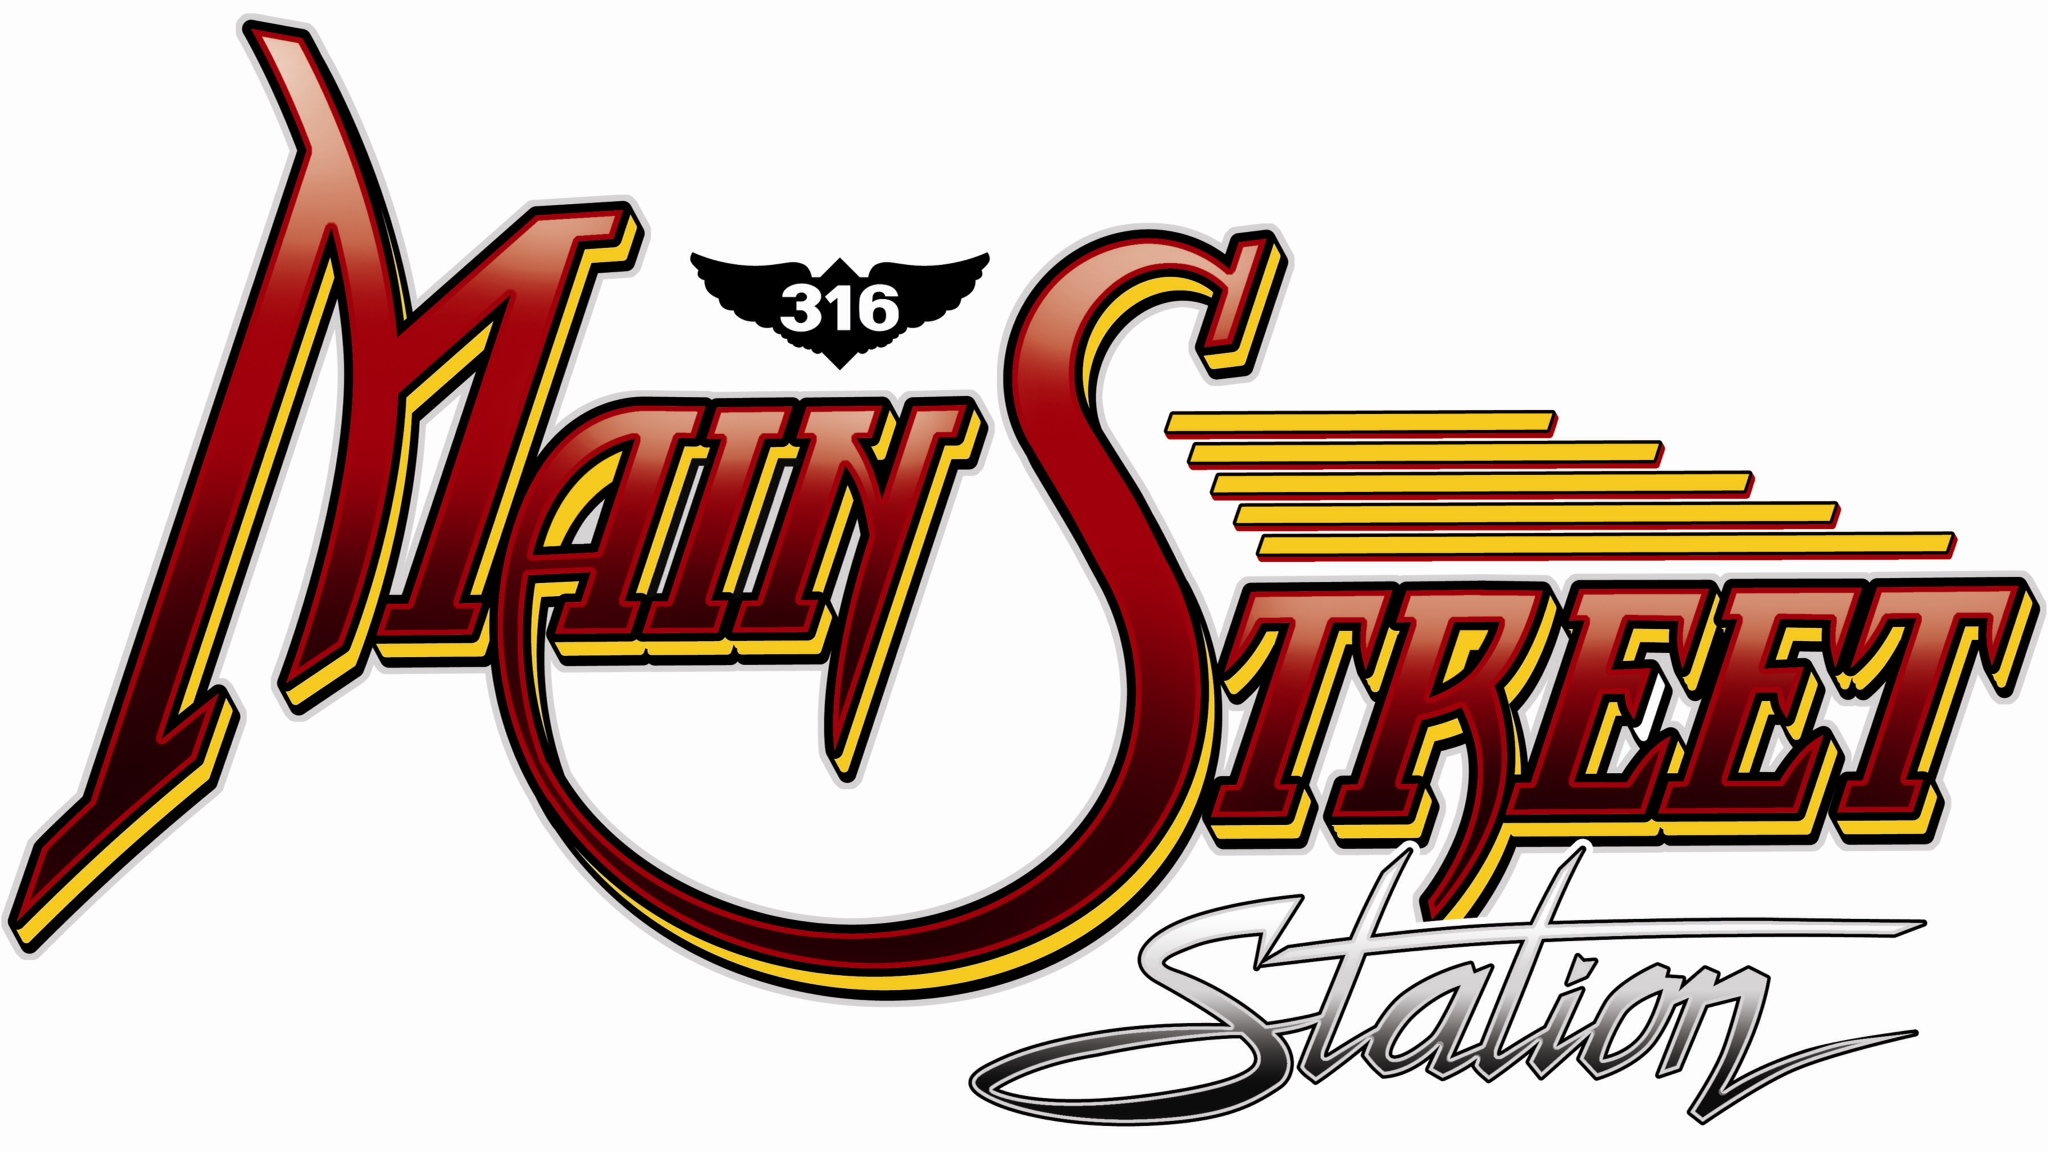 Hip hop radio stations in tampa fl - Hosted By Lucky Dreamer Marquis 2 Twelve String Rock Deltona